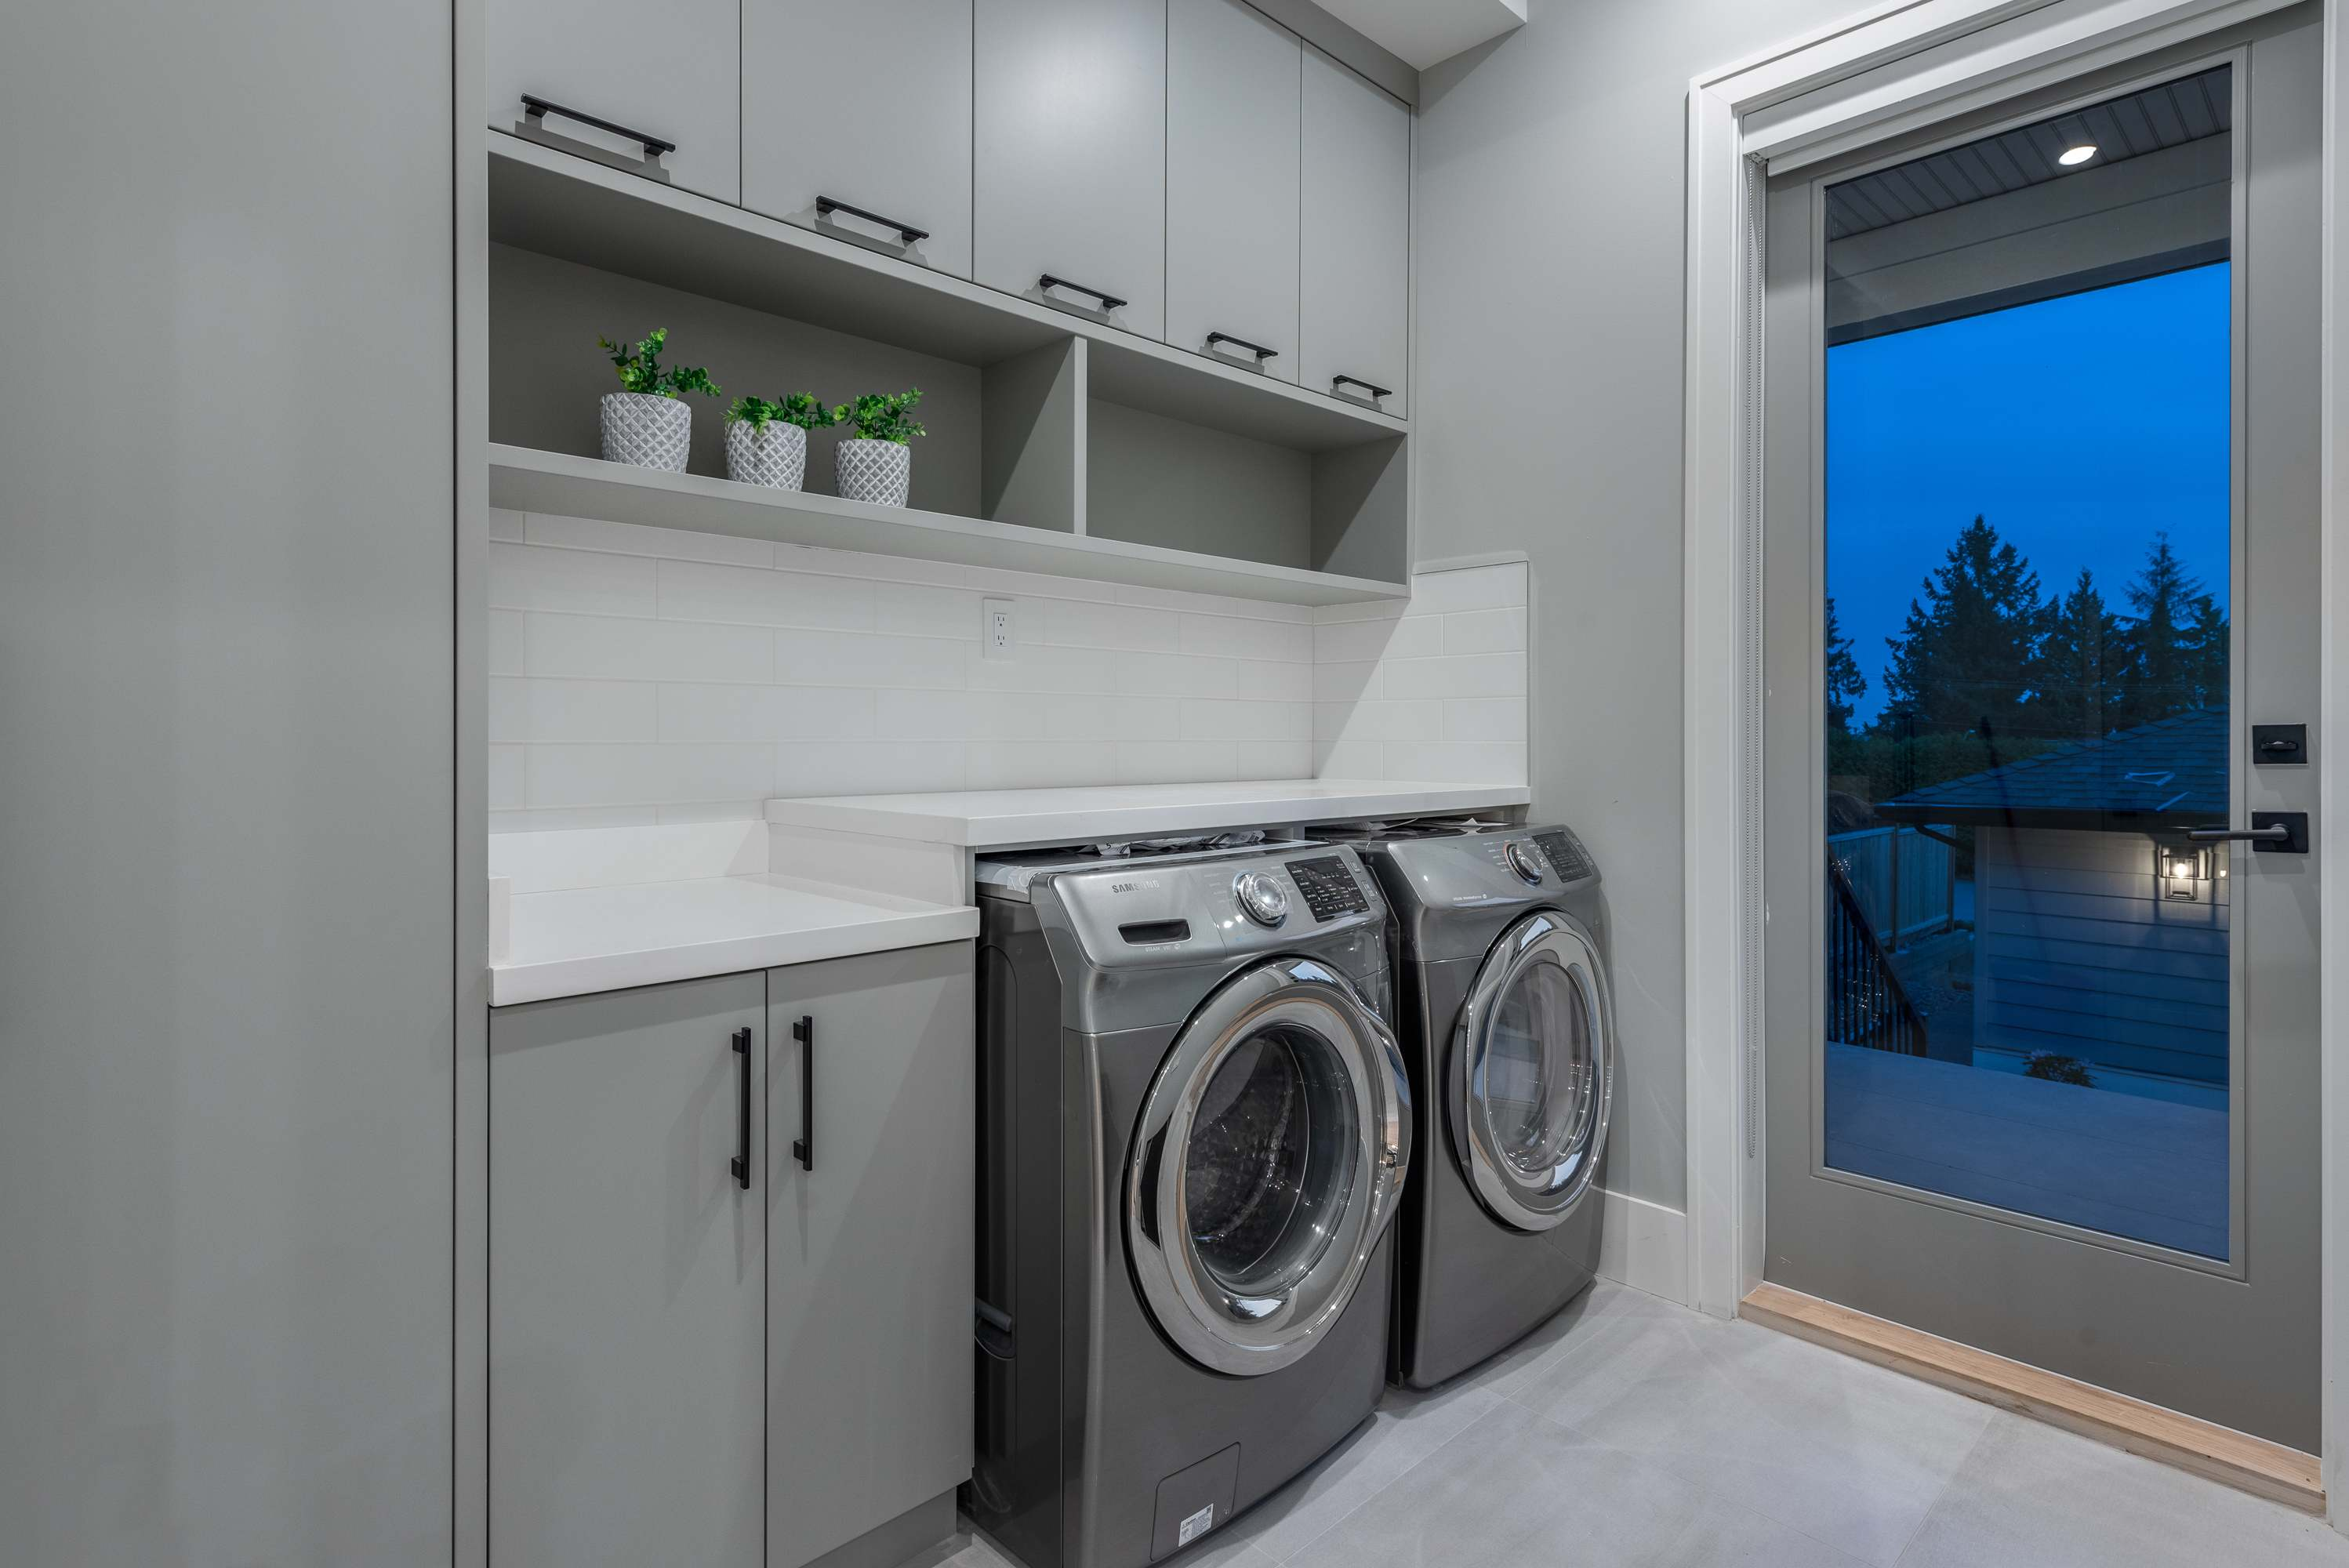 Interior view of a laundry room